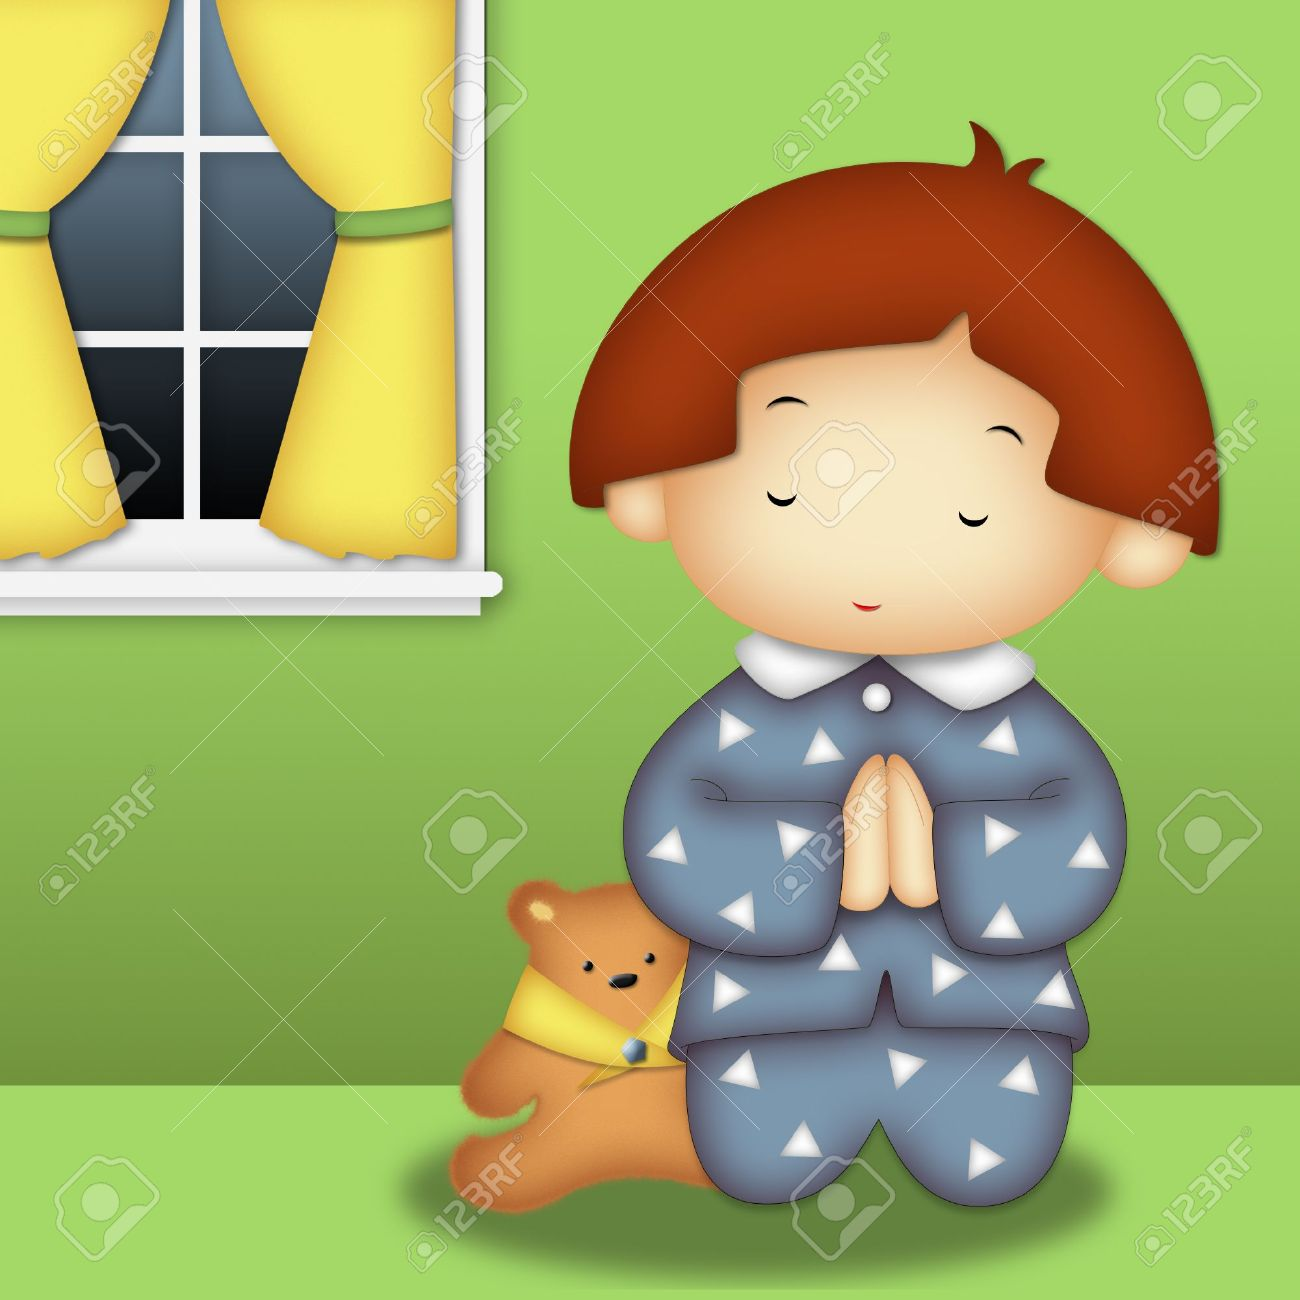 Praying boy wearing blue pajamas praying in his room Stock Photo - 7646869